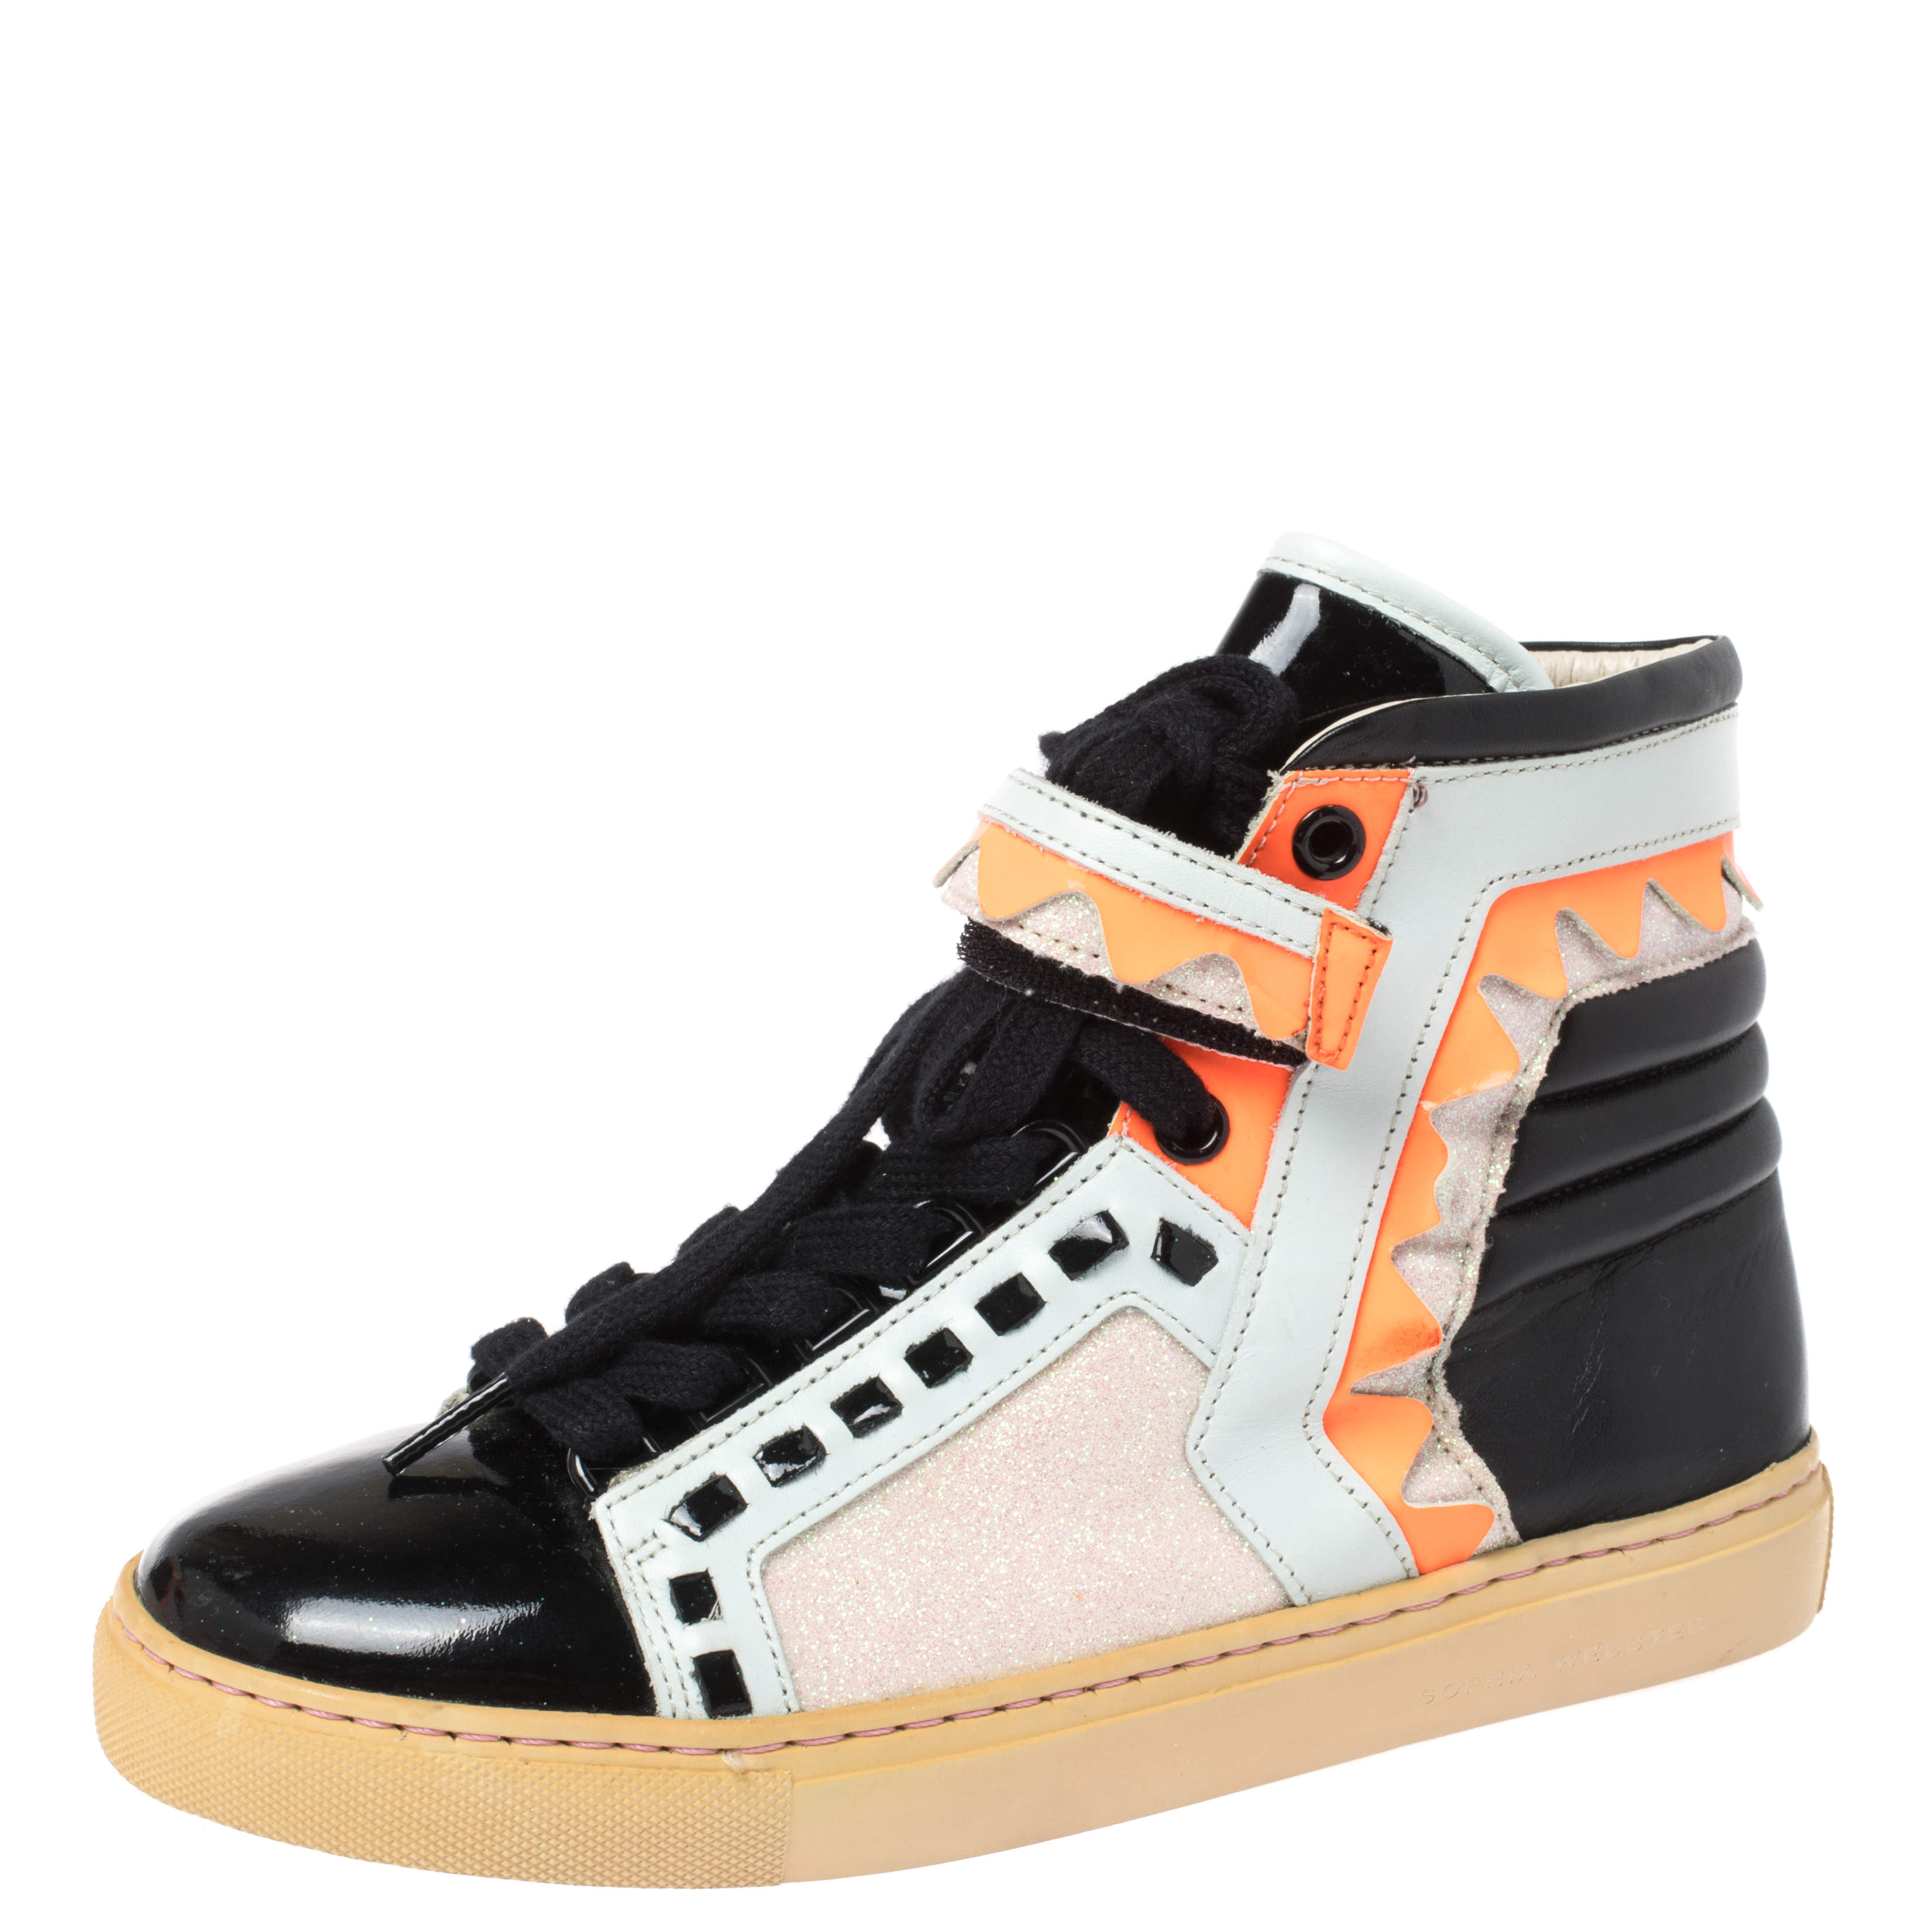 Sophia Webster Multicolor Leather and Glitter Riko High Top Sneakers Size 36